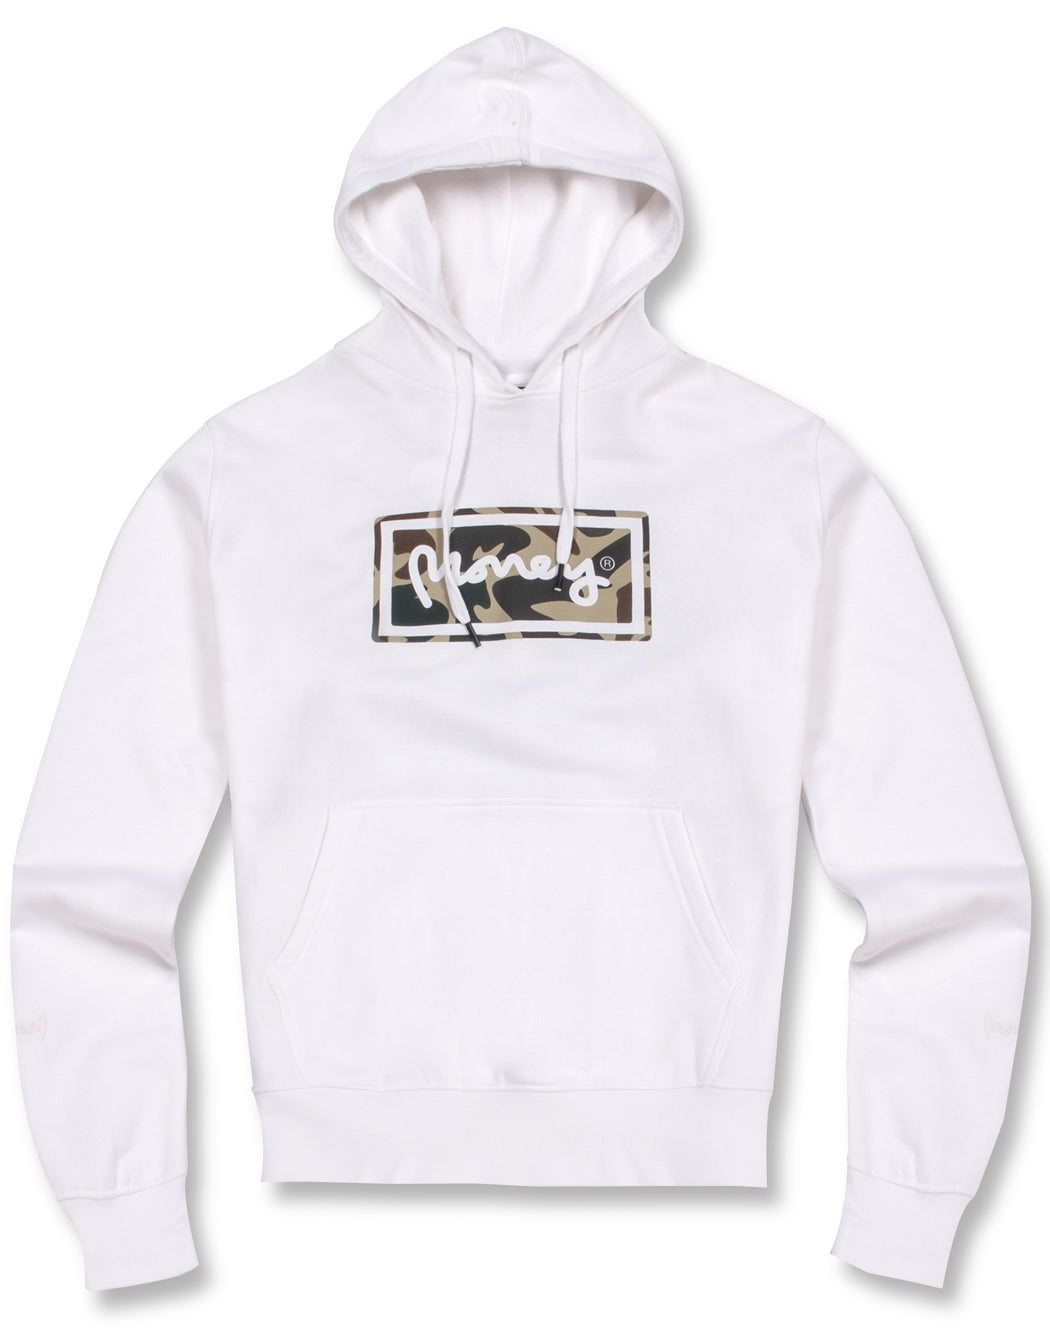 WHITE SUPER STAR HOOD